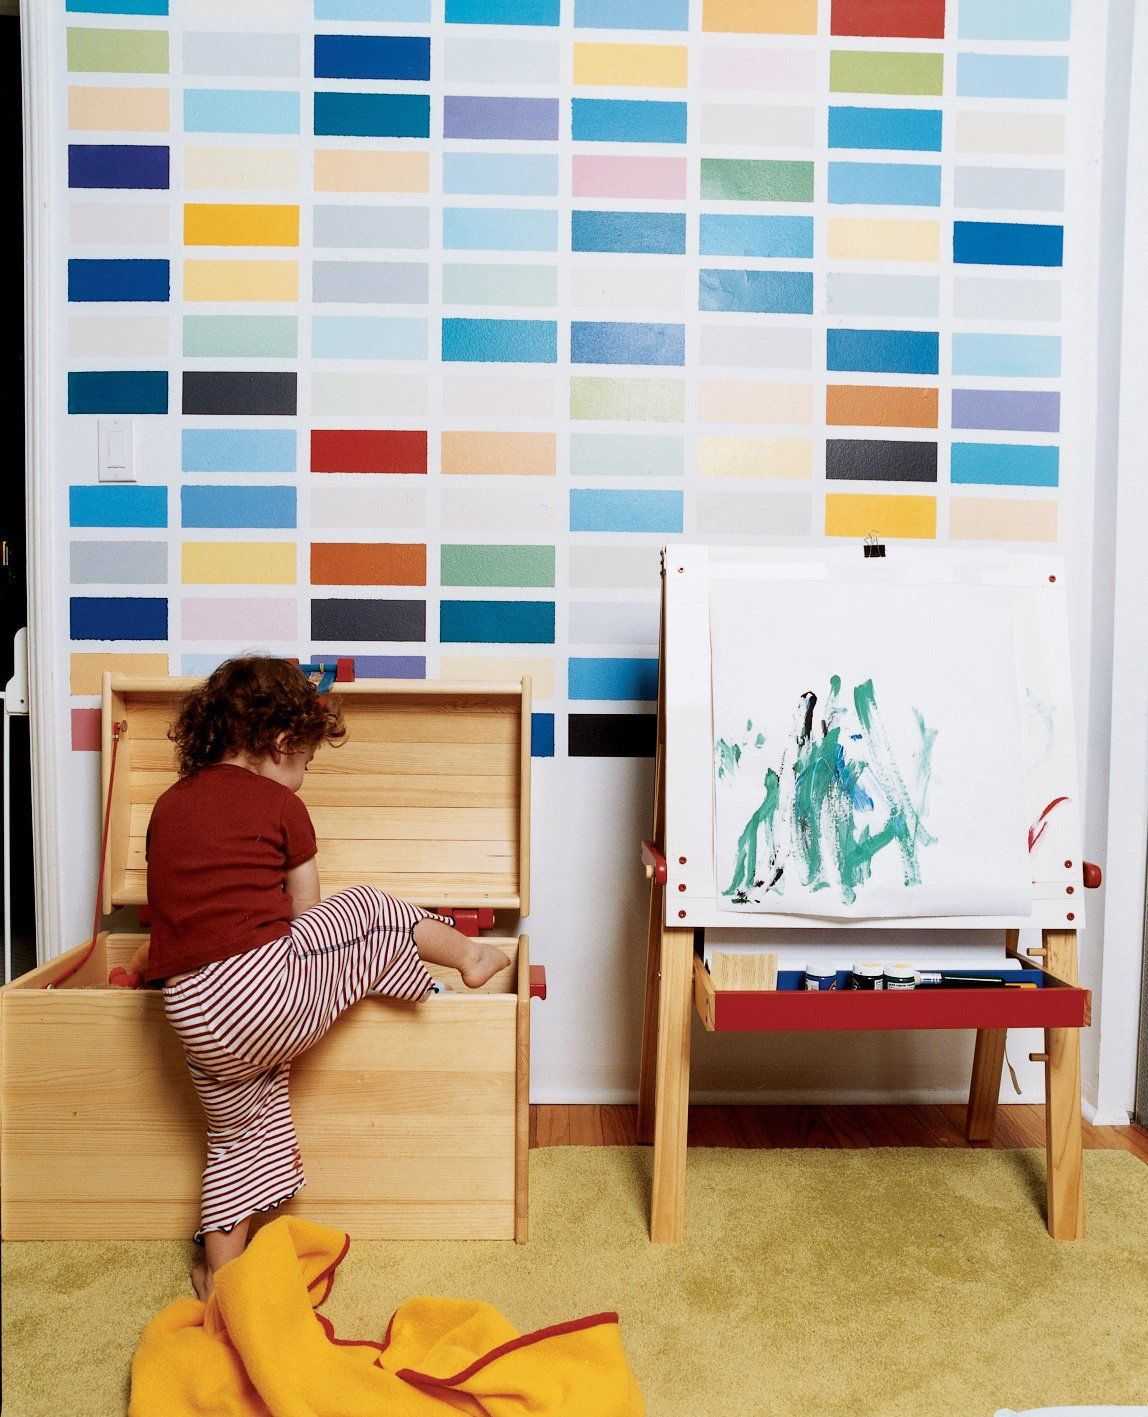 Kids Room Carpet Floor Toddler Age And Playroom Type Sosi Gets Into Trouble Beneath A Colorful Grid Painted By Her Dad As Riff On The German